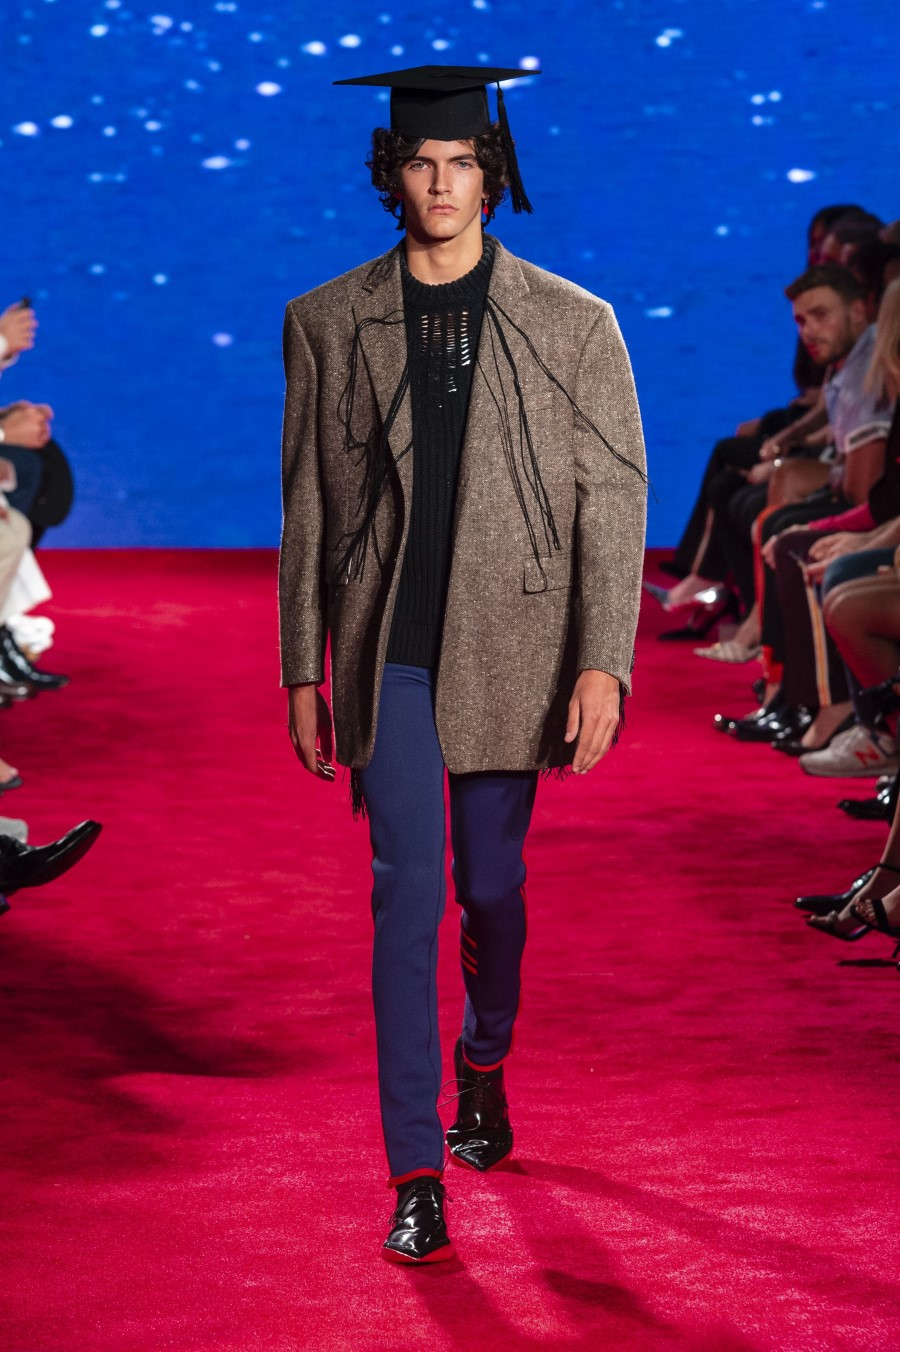 Calvin Klein 205W39NYC Printemps-Eté 2019 - New York Fashion Week